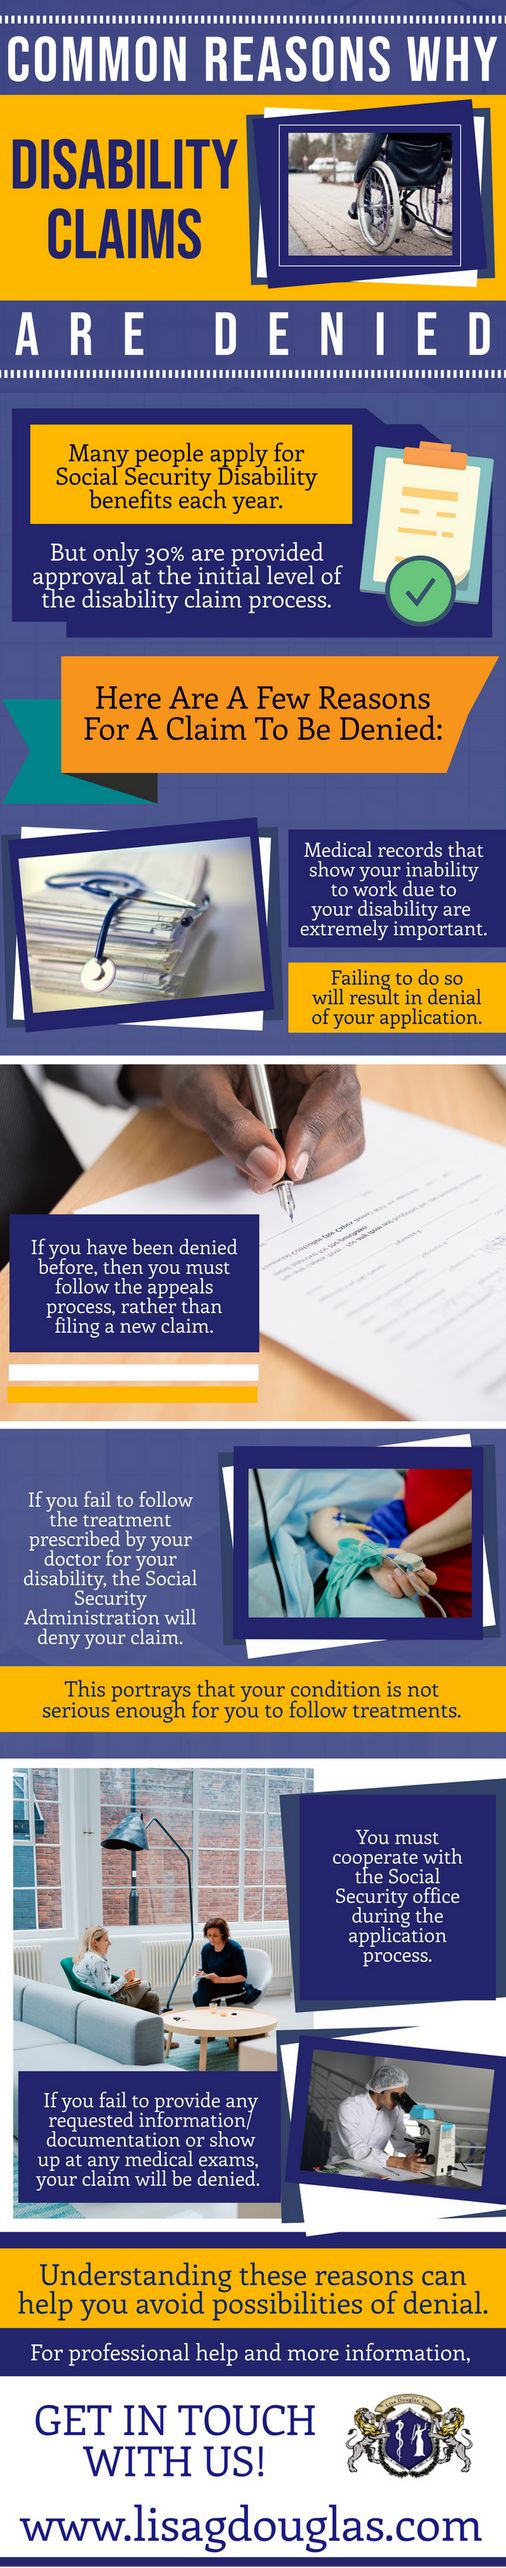 Common Reasons Why Disability Claims Are Denied